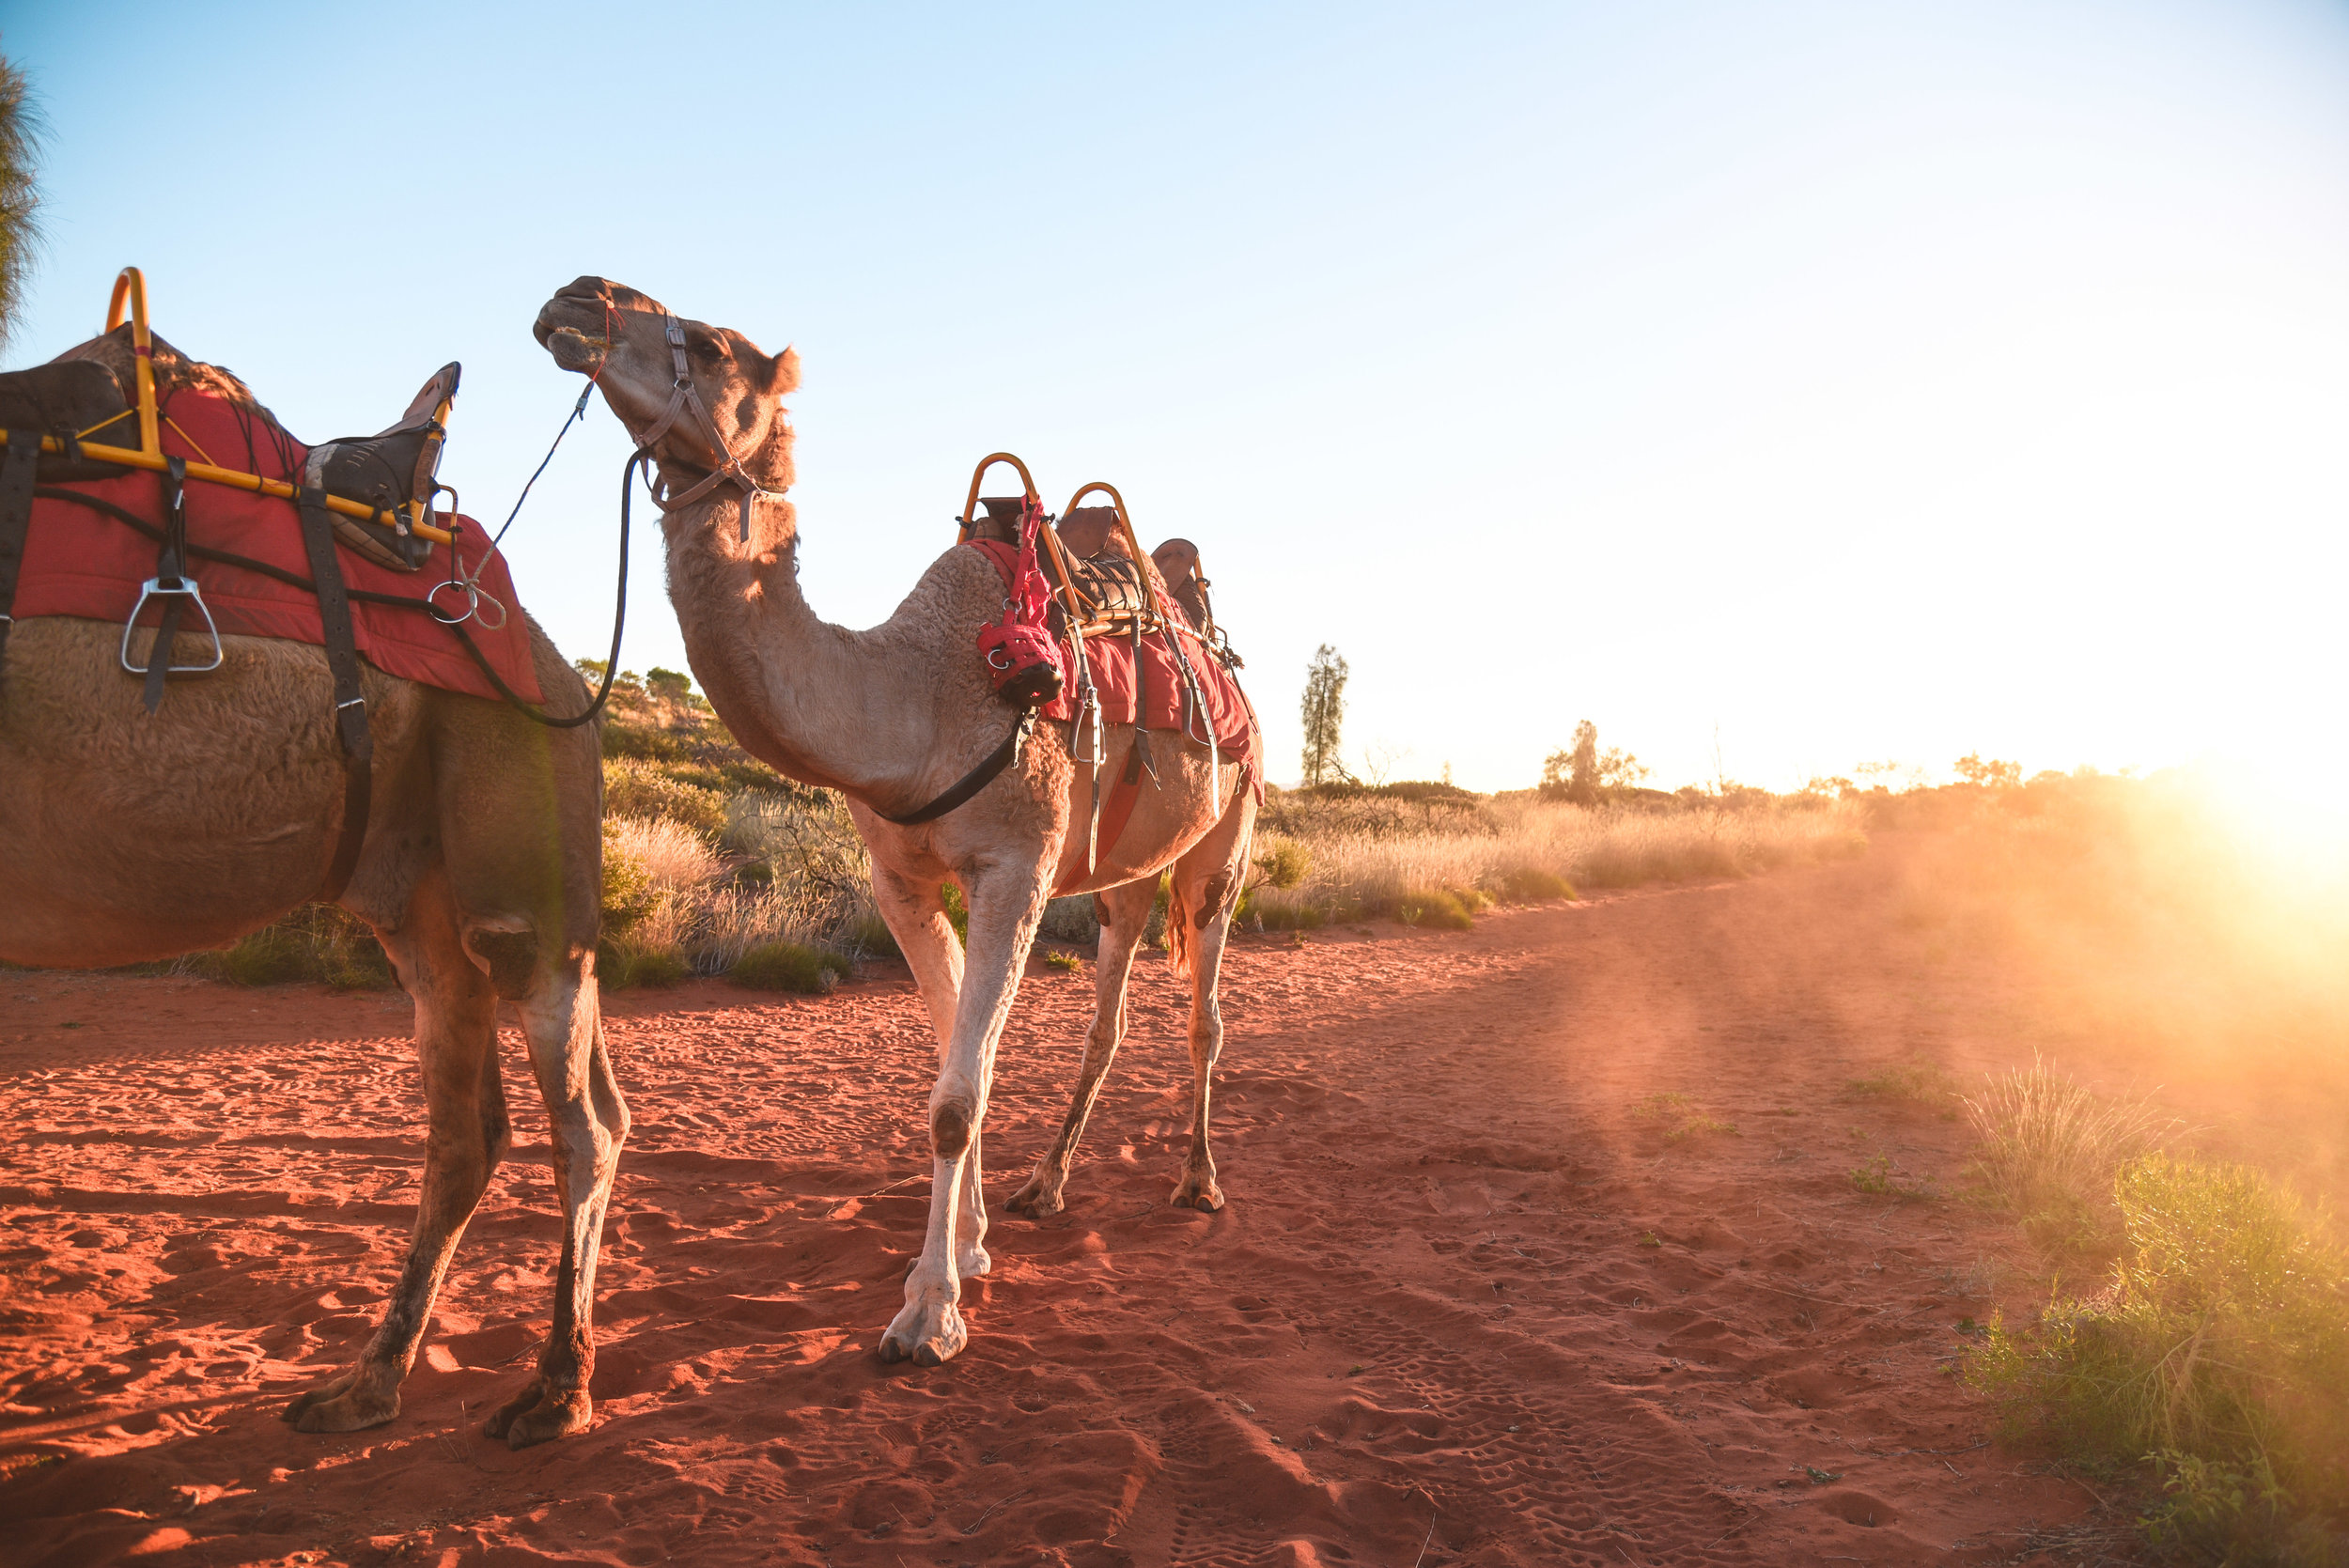 Riding camels in the Outback was an experience like no other!